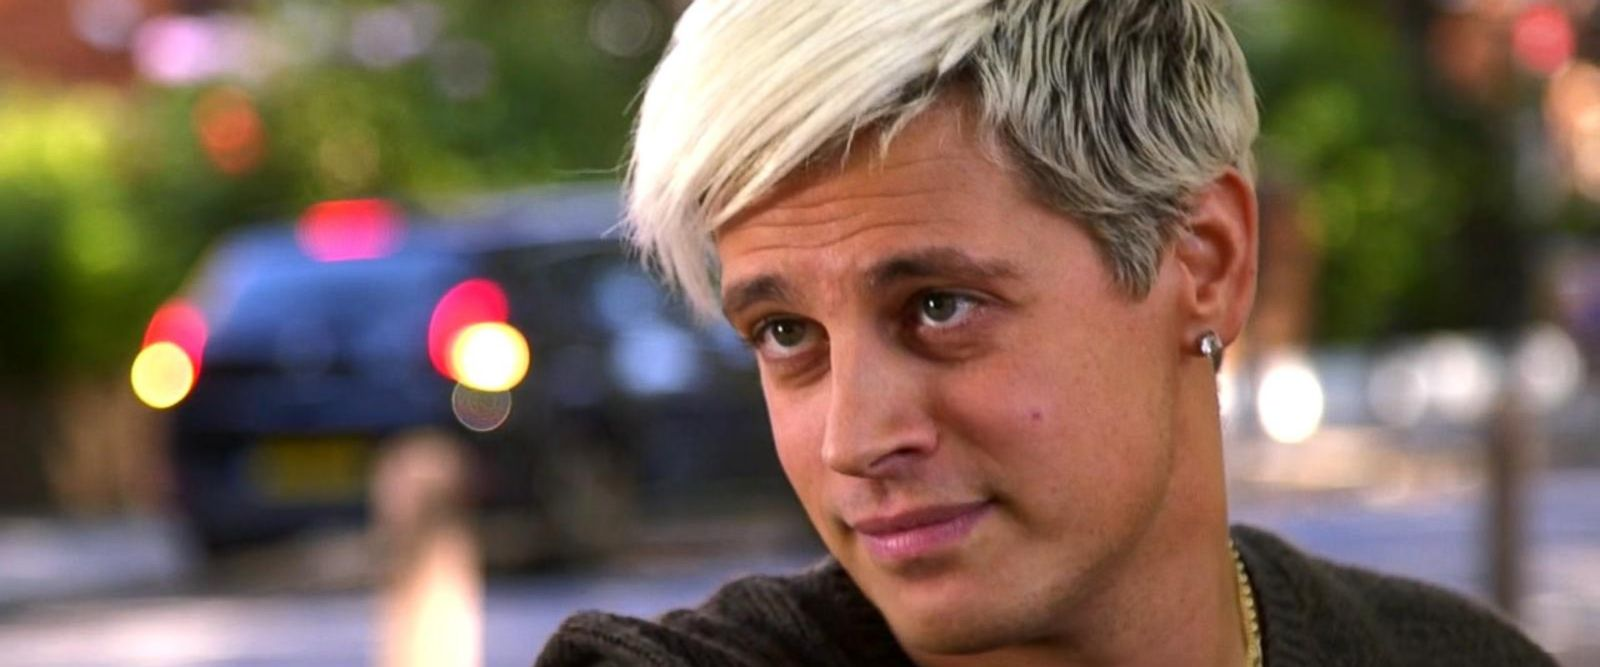 Breitbart News editor Milo Yiannopoulos has resigned after coming under fire from other conservatives over comments on sexual relationships between boys and men.